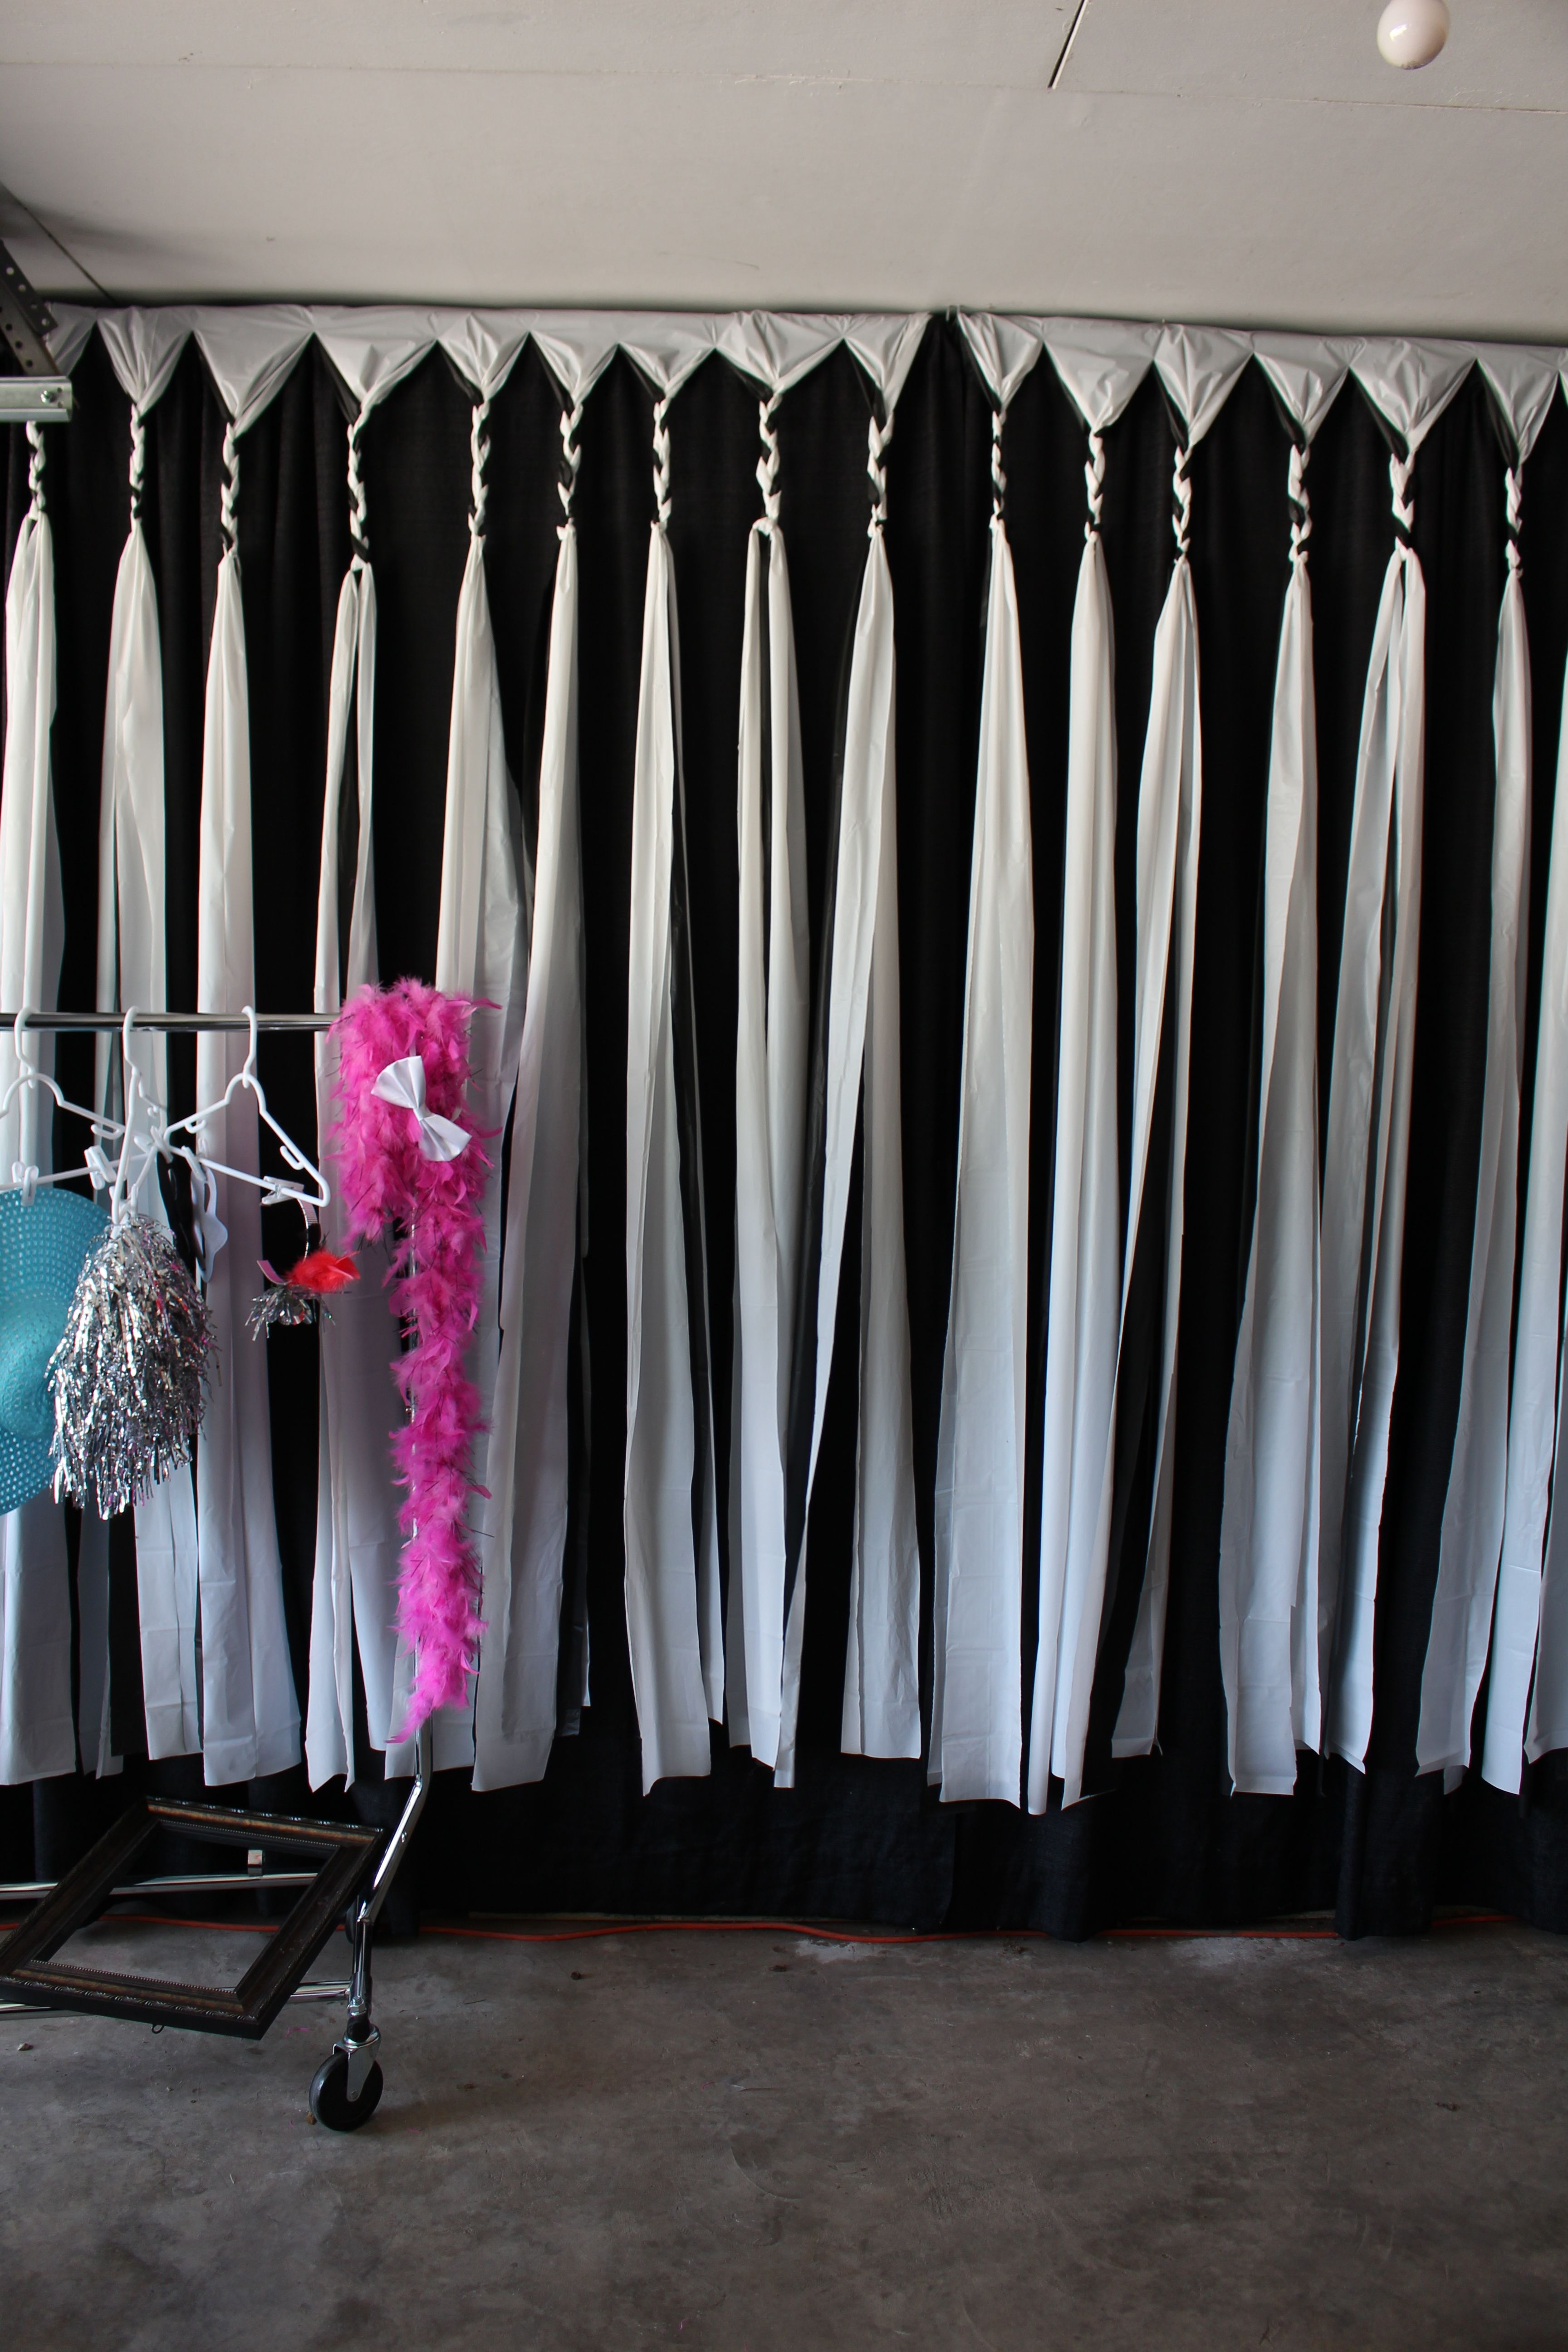 Homemade Backdrop For Photo Booth Made From Dollar Store